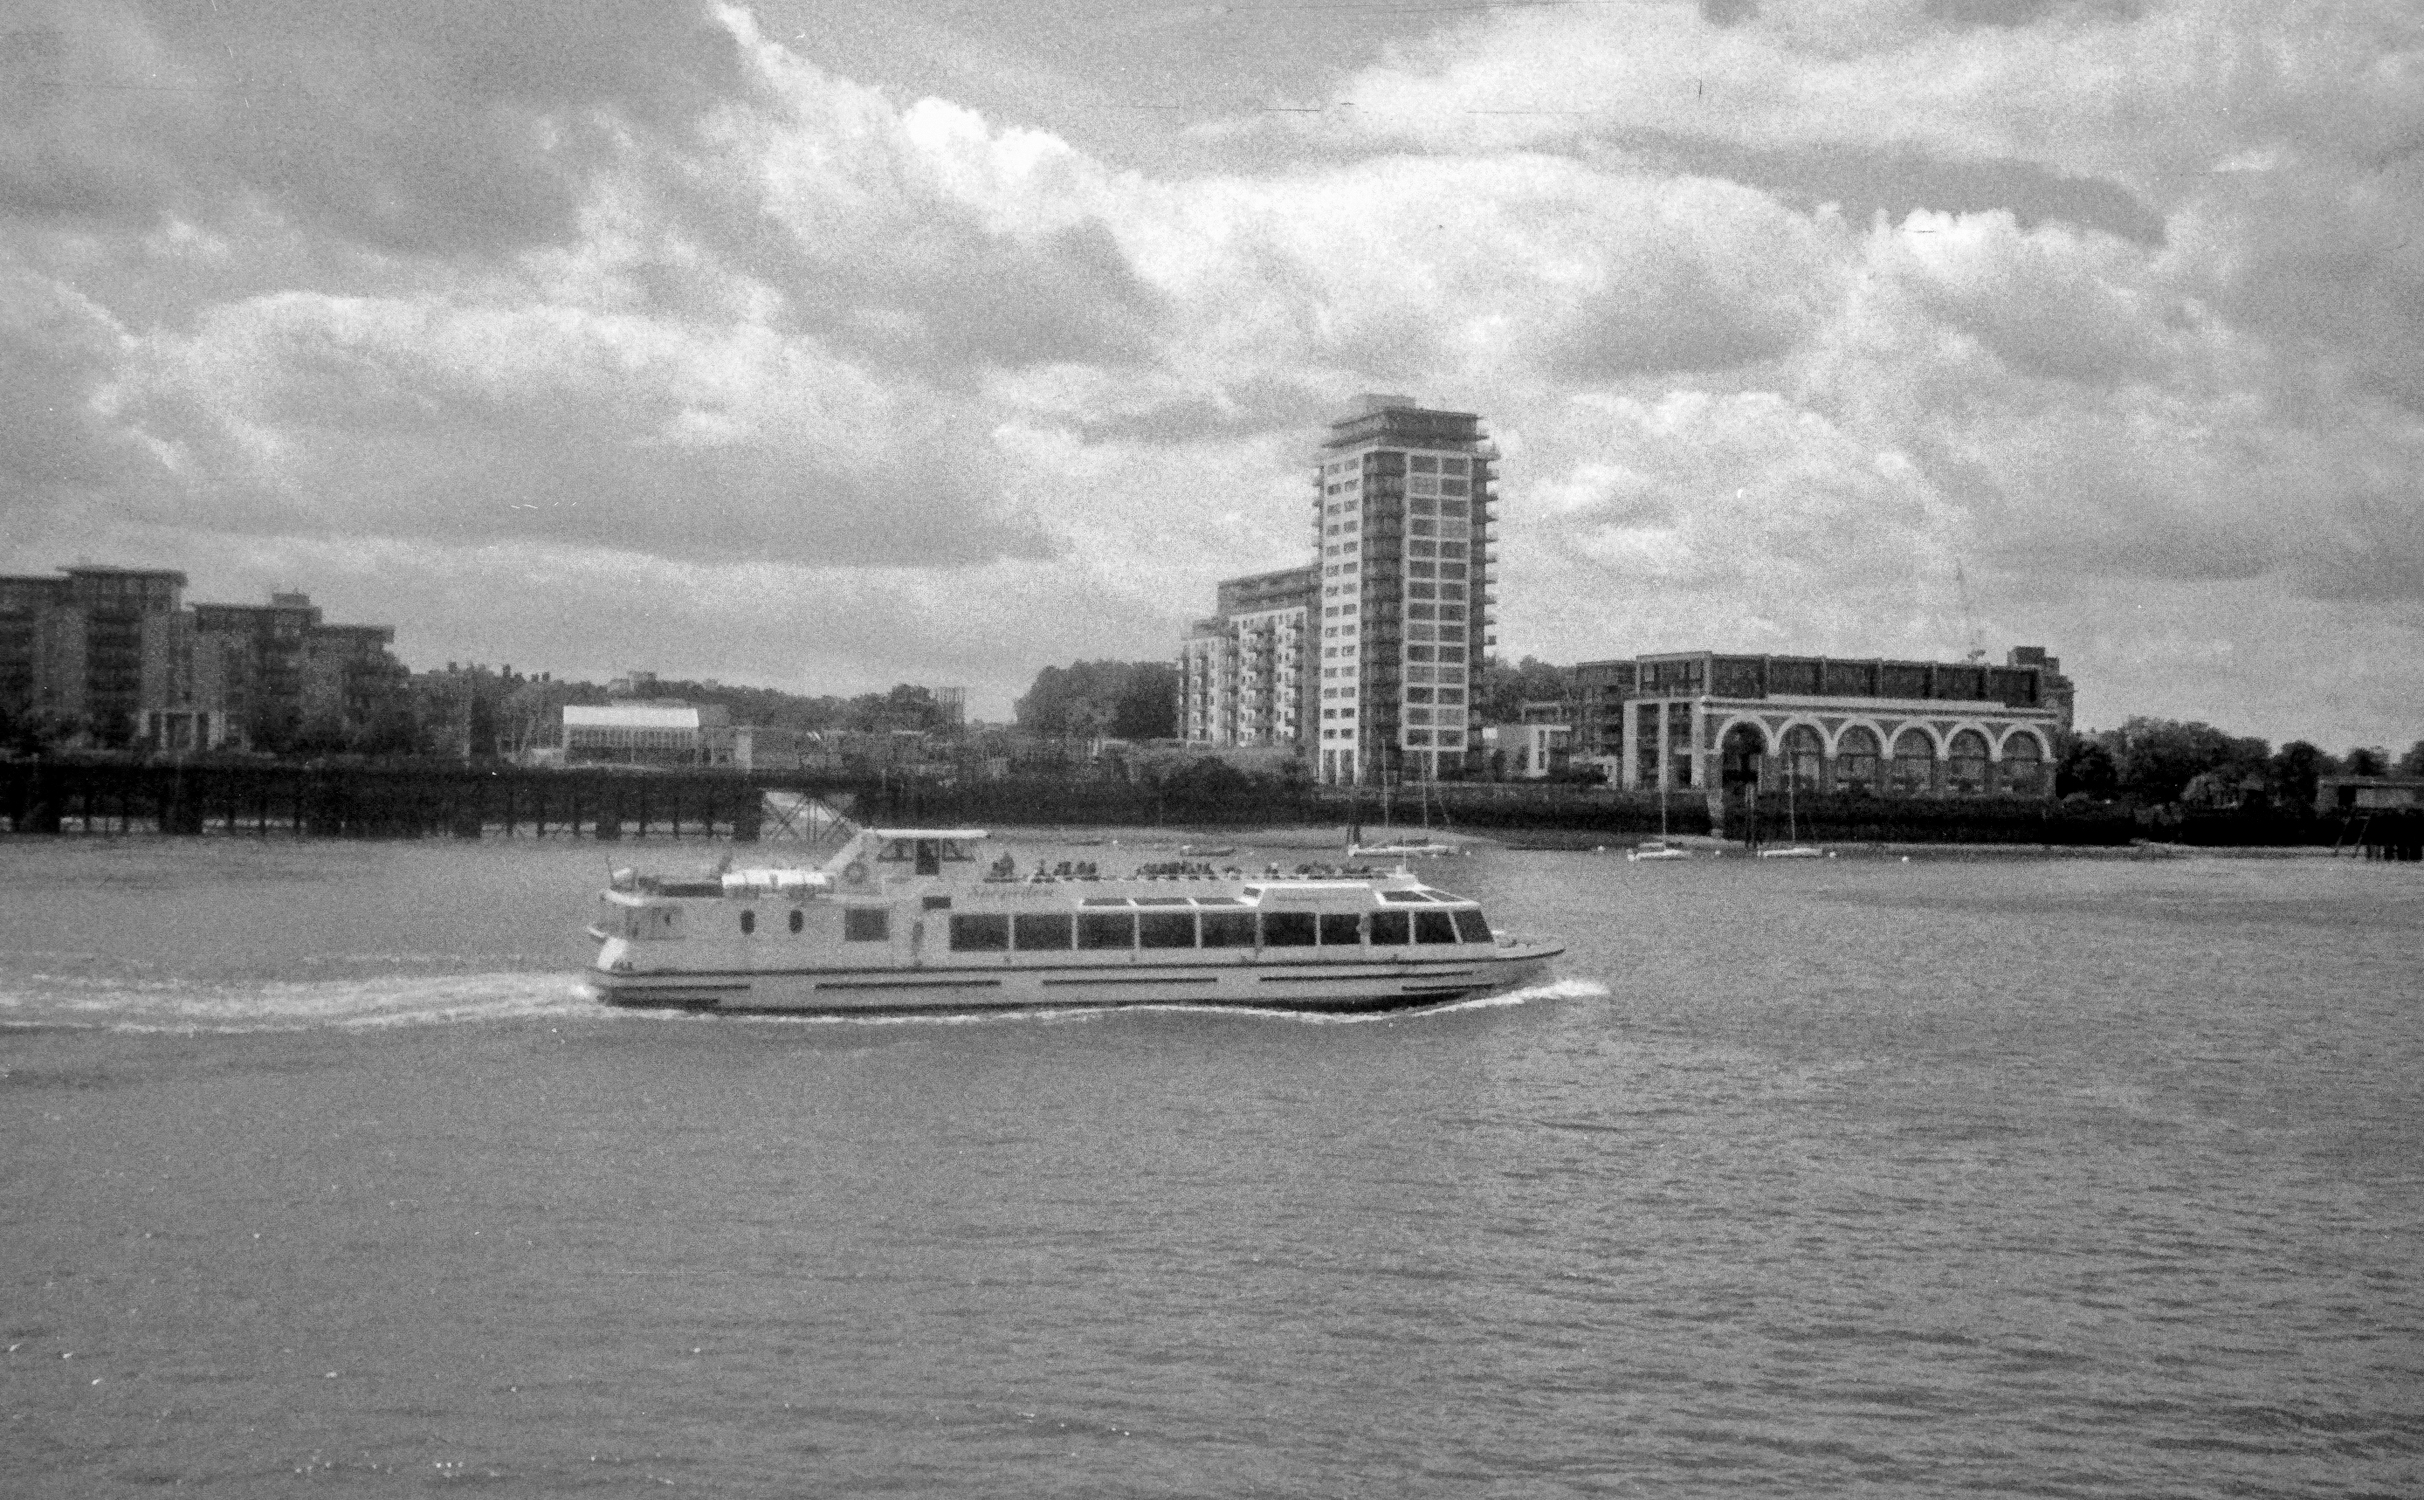 Ferry in River Thames (Pic: Stephen Dowling)